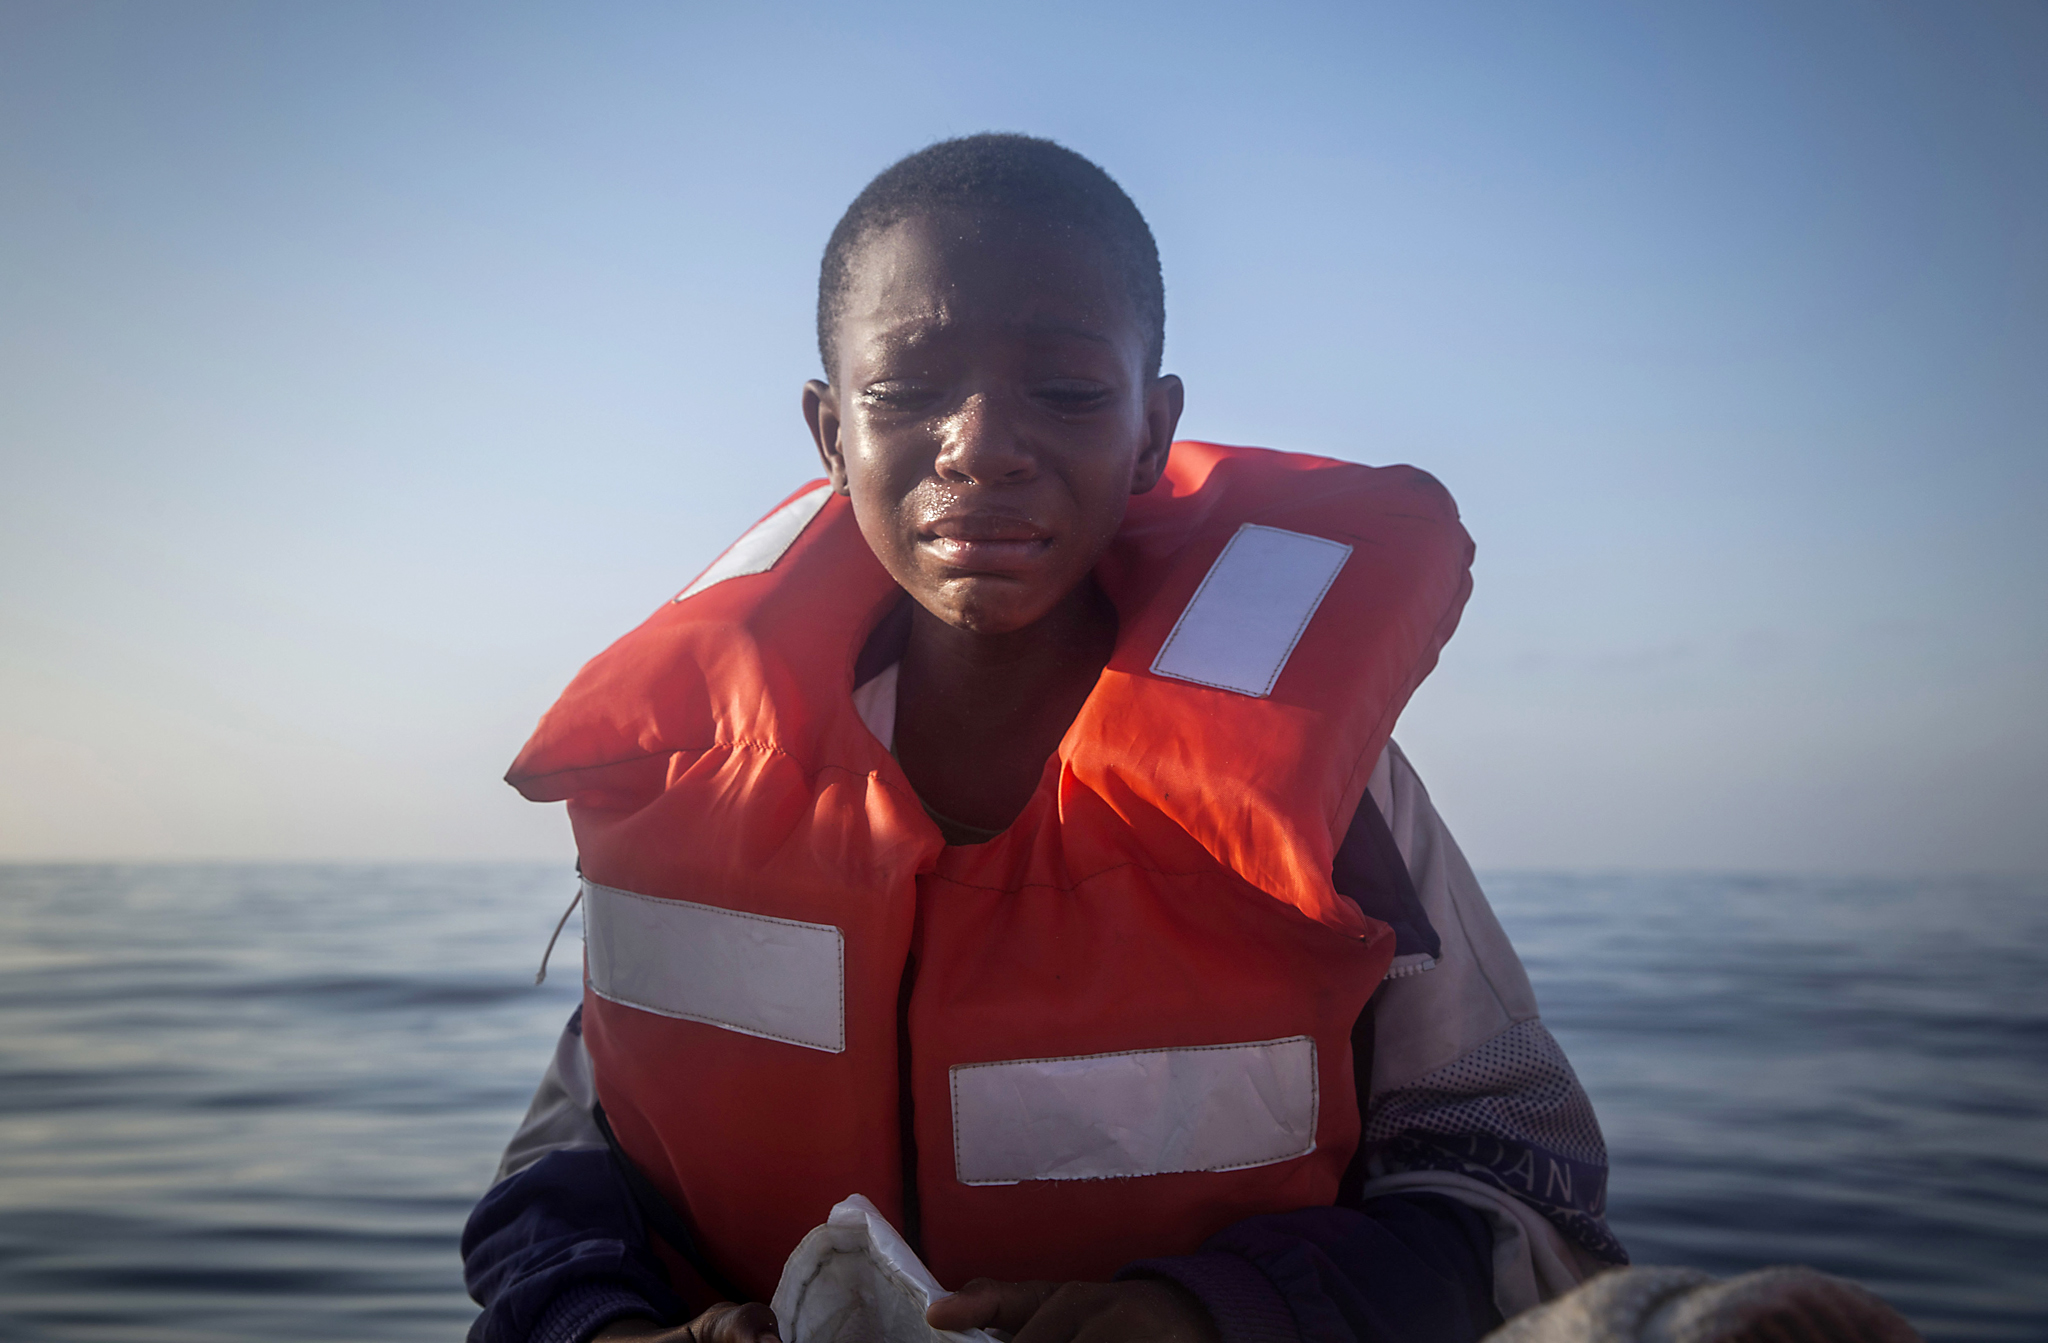 In this Thursday, July 28, 2016 photo, Dustin, 11, from Nigeria, who said his mother died in Libya, cries aboard a Spanish NGO's boat, after being rescued from an overcrowded rubber boat during a rescue operation on the Mediterranean Sea, about 23 kilometers (14 miles) north of Sabratha, Libya. (AP Photo/Santi Palacios)